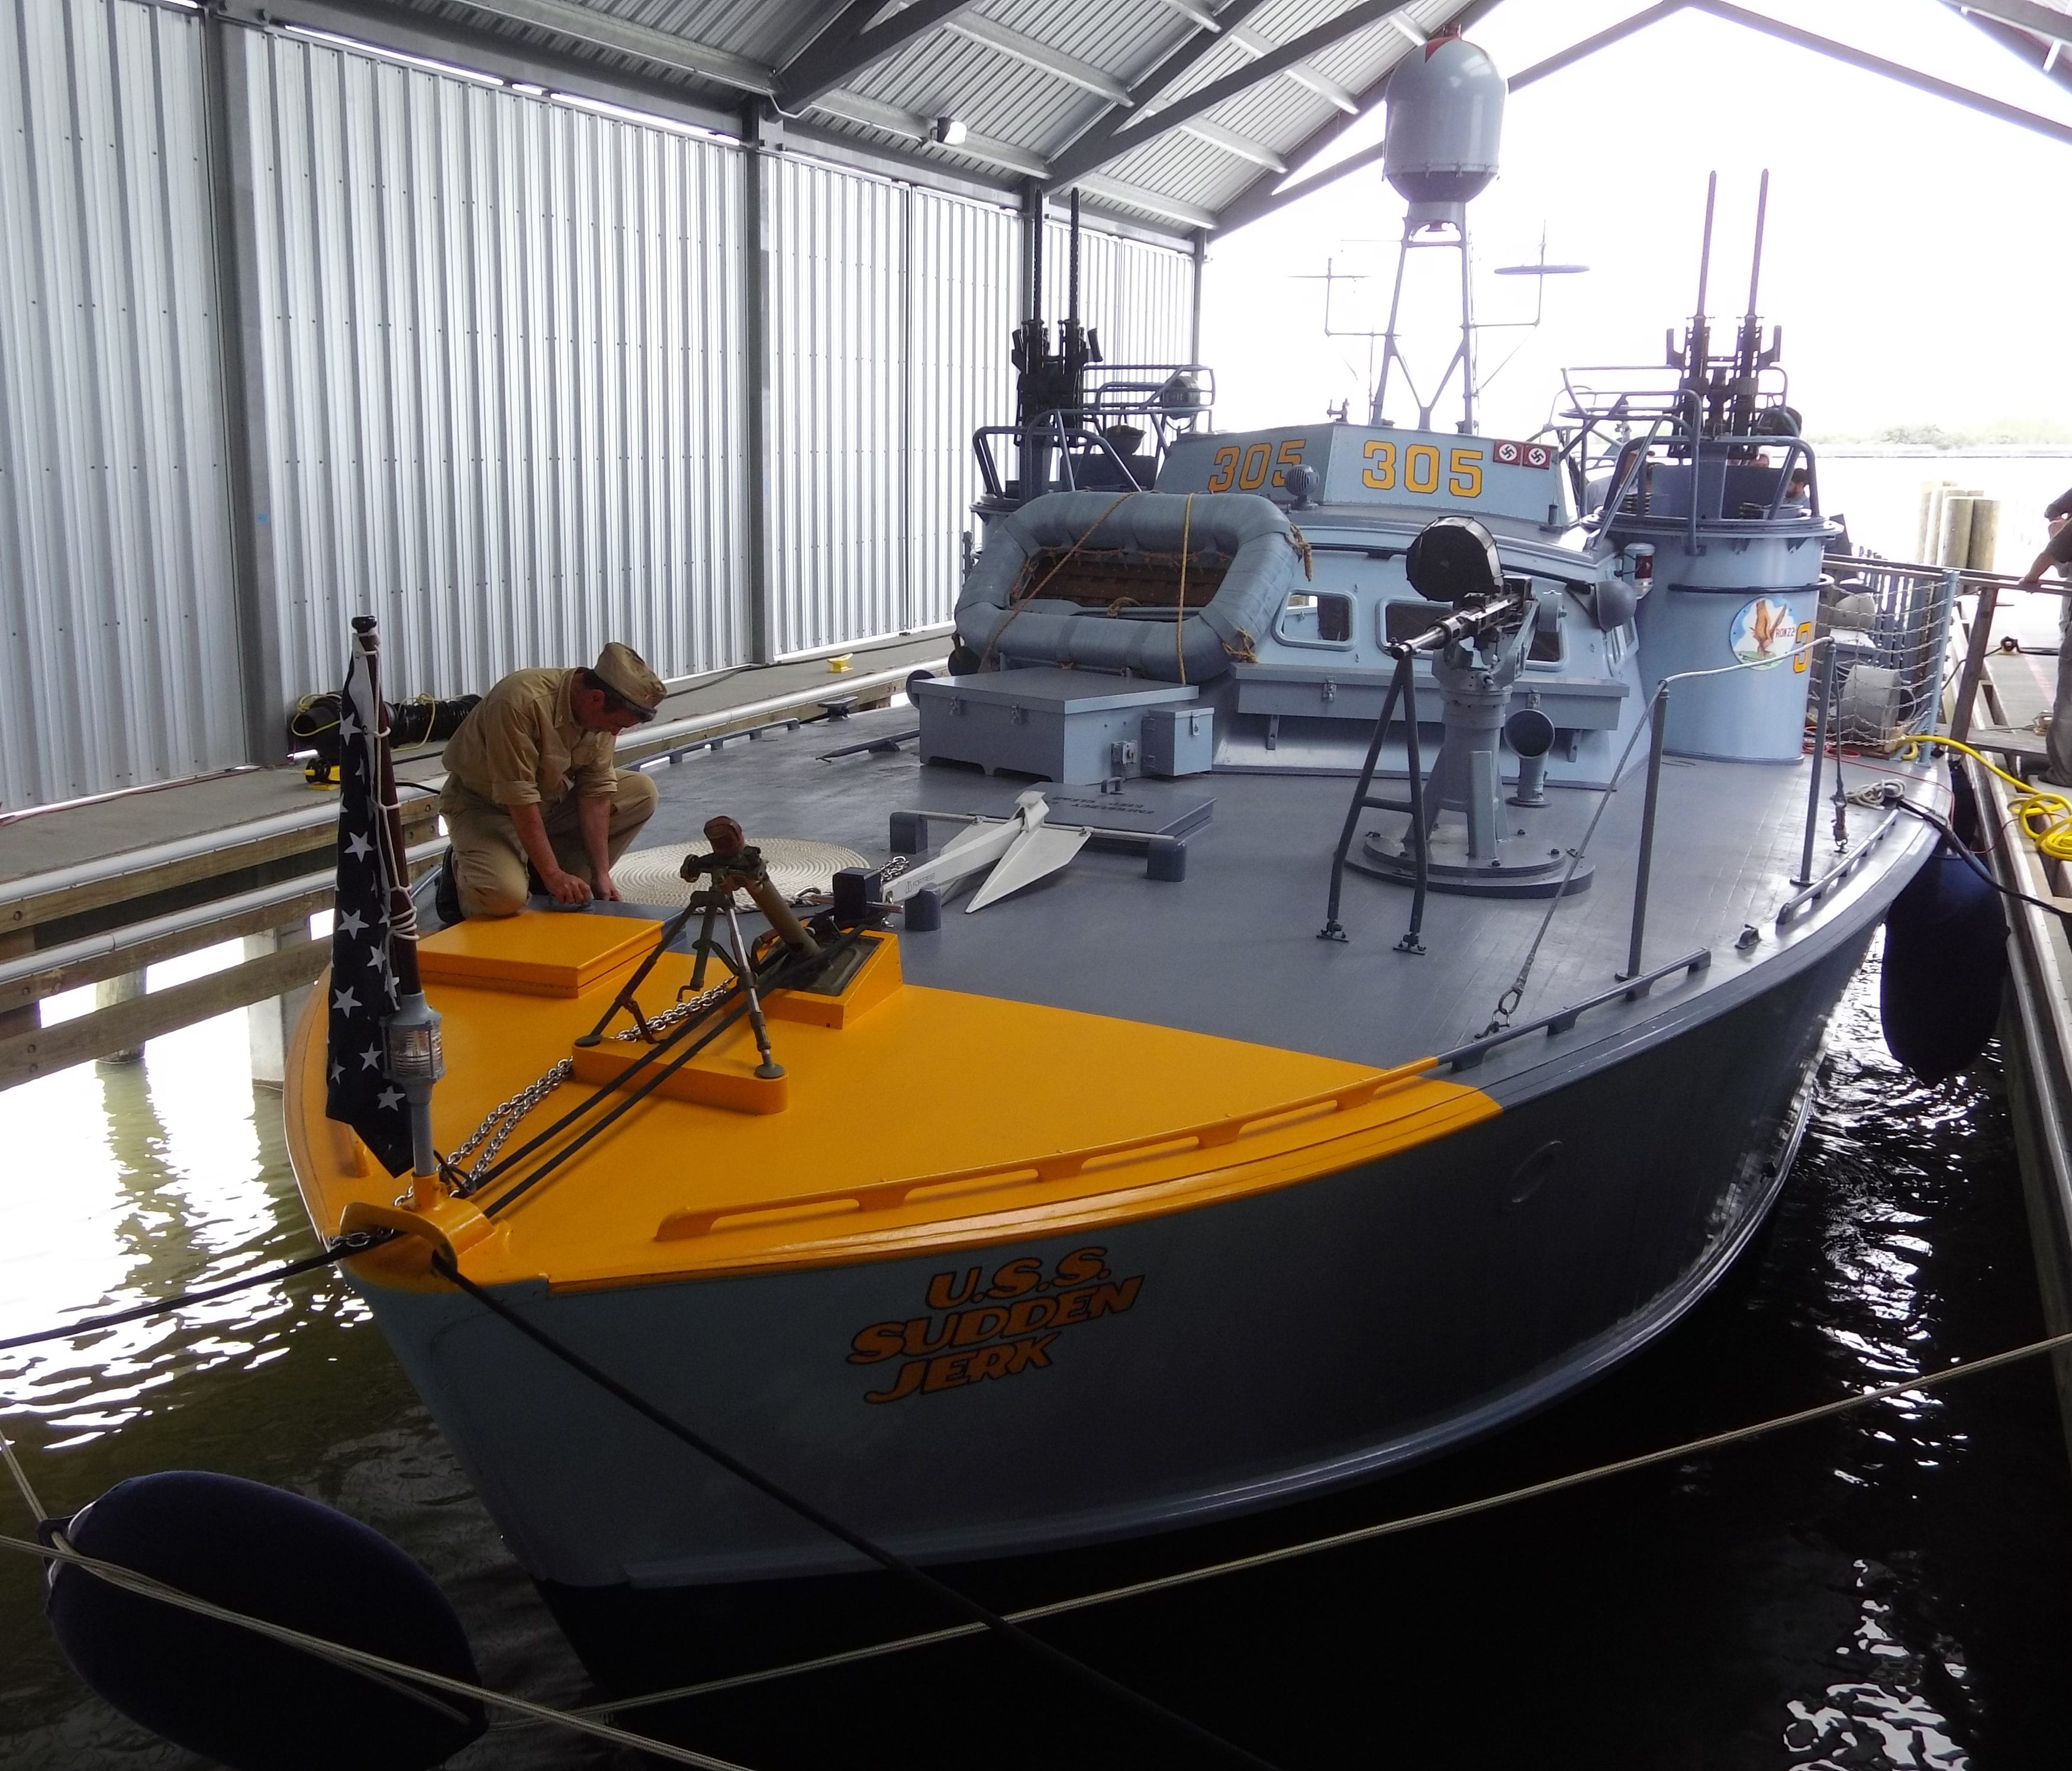 On a recent Friday afternoon on New Orleans' Lake Pontchartrain, PT-305 sat quietly in her boathouse, not giving any inclination as to what she saw in the Mediterranean during World War II, for which she was commissioned in December 1943 and tested o